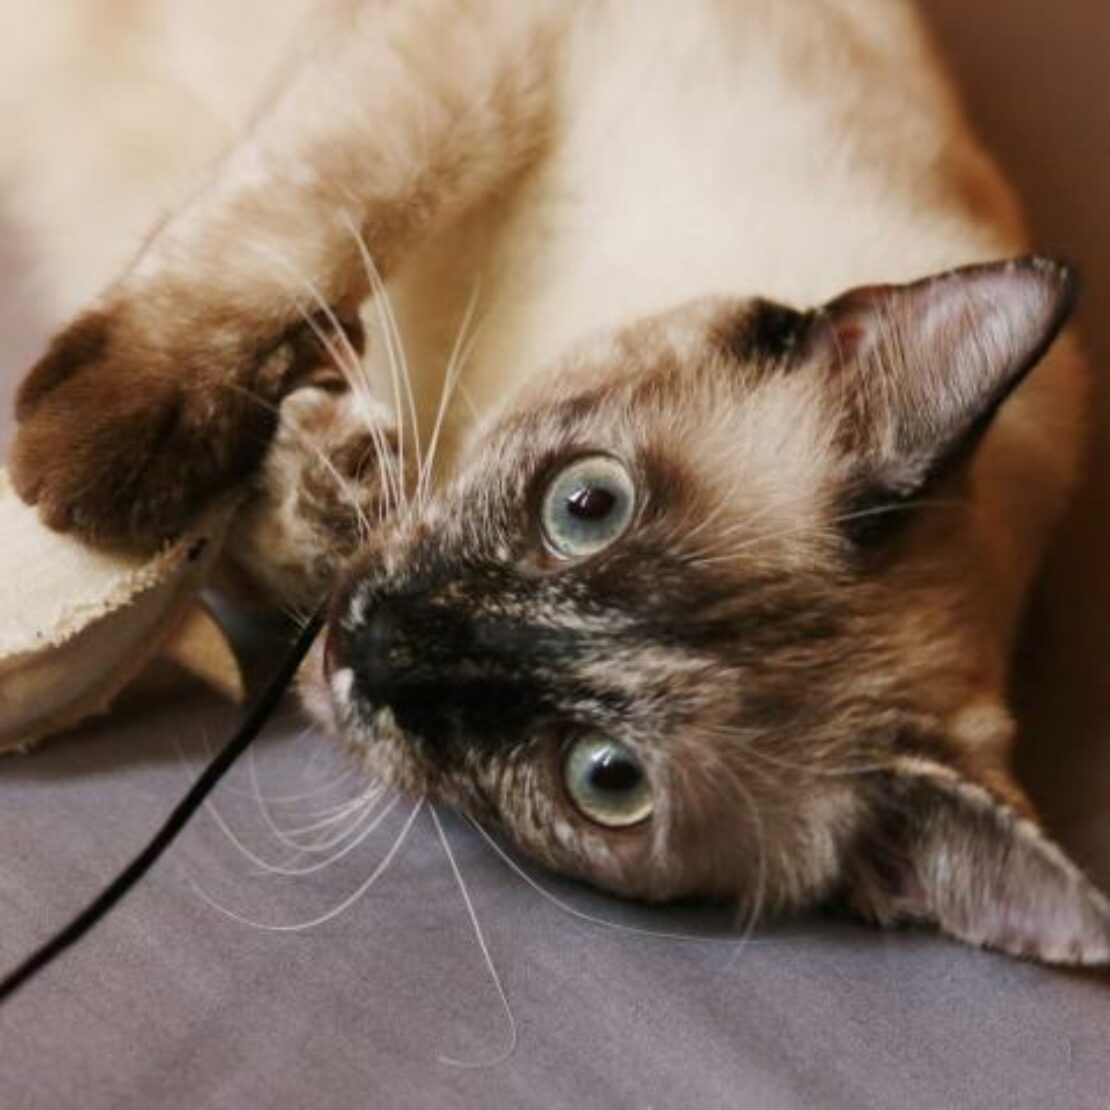 Sealpoint Siamese kitten lies seductively on side, playing with a toy and staring at the camera.